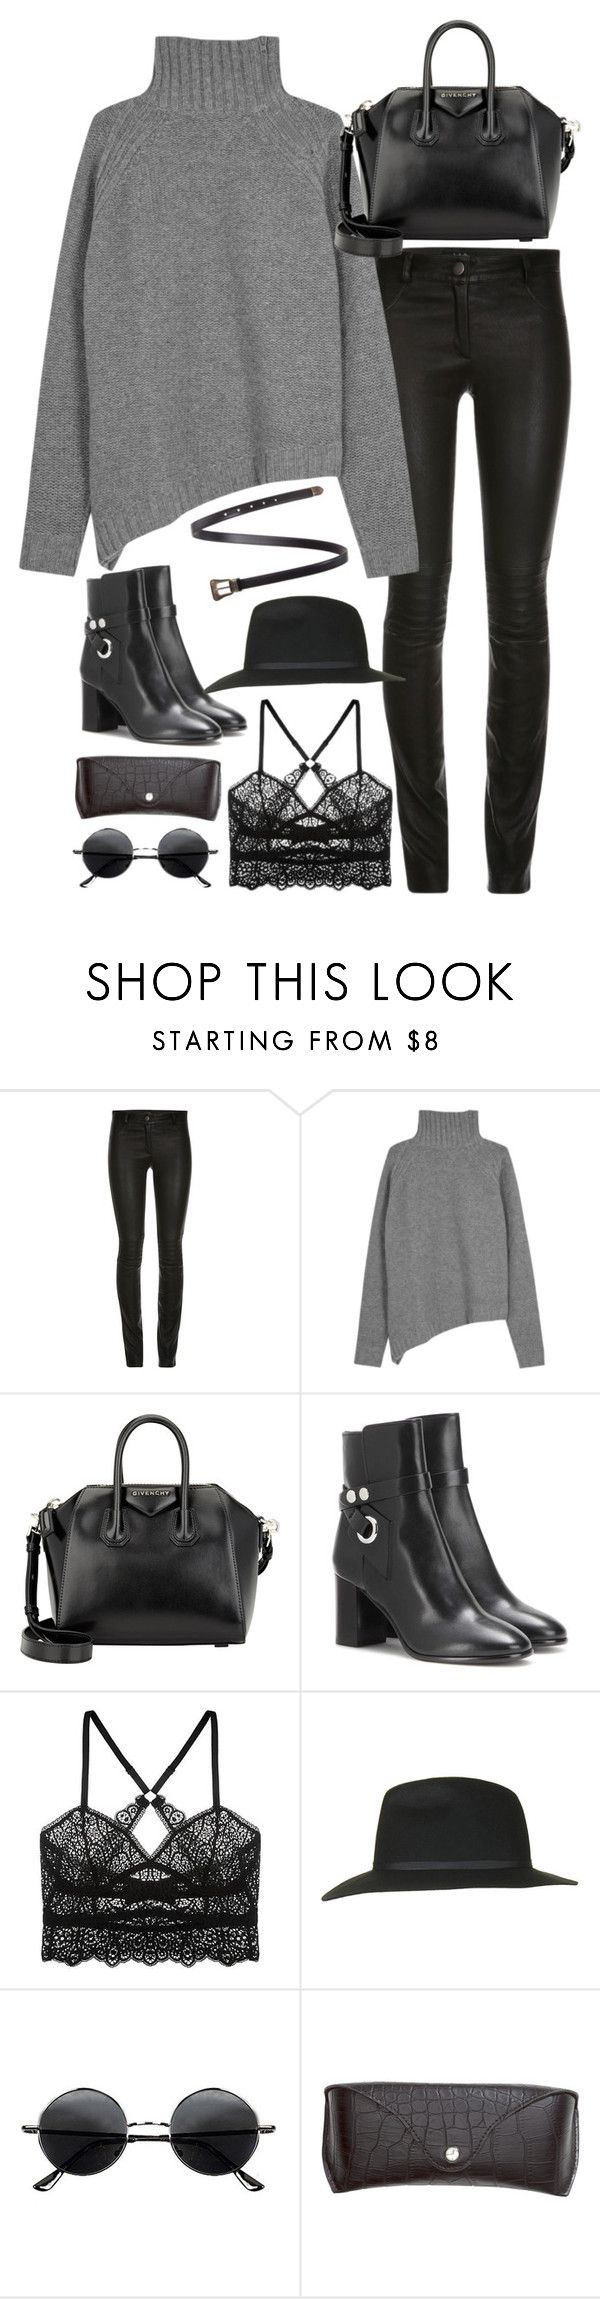 """""""Untitled#4181"""" by fashionnfacts ❤ liked on Polyvore featuring Joseph, Givenchy, Isabel Marant, ELSE, Topshop, Retrò, H&M and Yves Saint Laurent"""